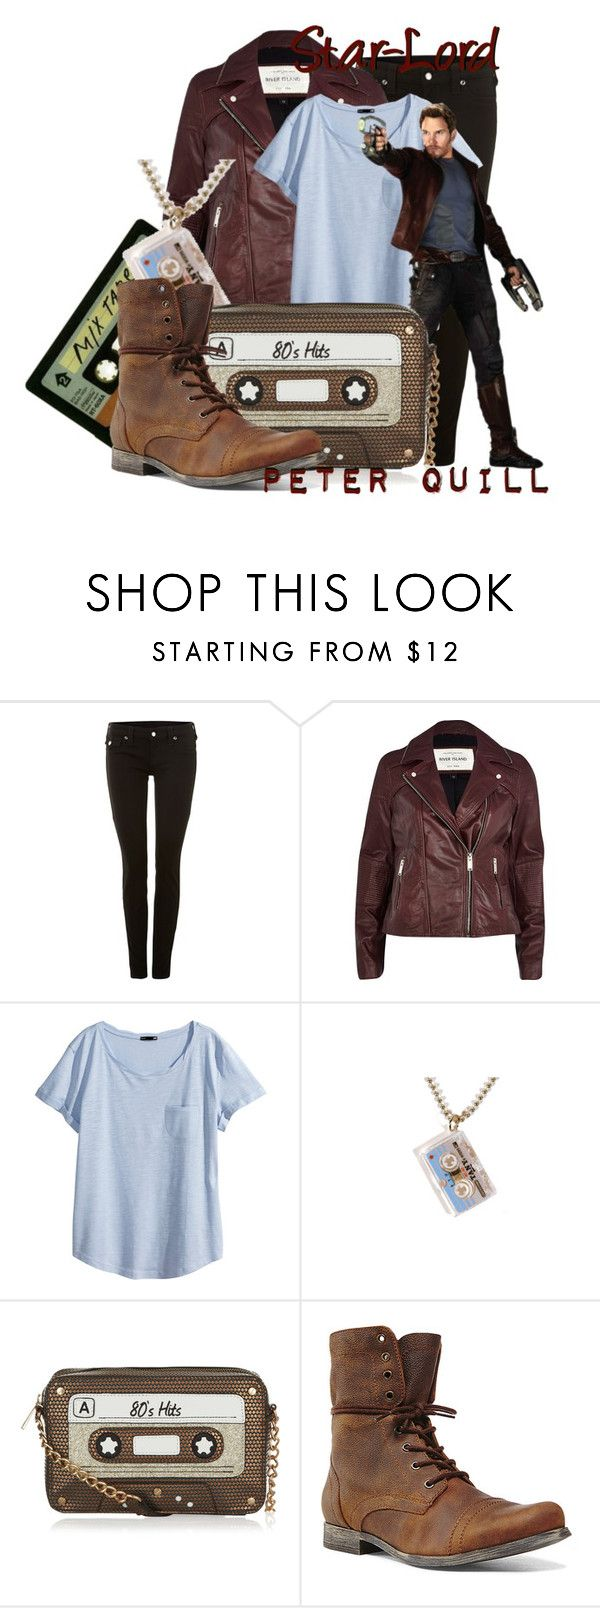 """""""Peter Quill aka Star-Lord from Guardians of the Galaxy"""" by infinity-starts-with-you ❤ liked on Polyvore featuring True Religion, INDIE HAIR, River Island, H&M, Monsoon and Steve Madden"""